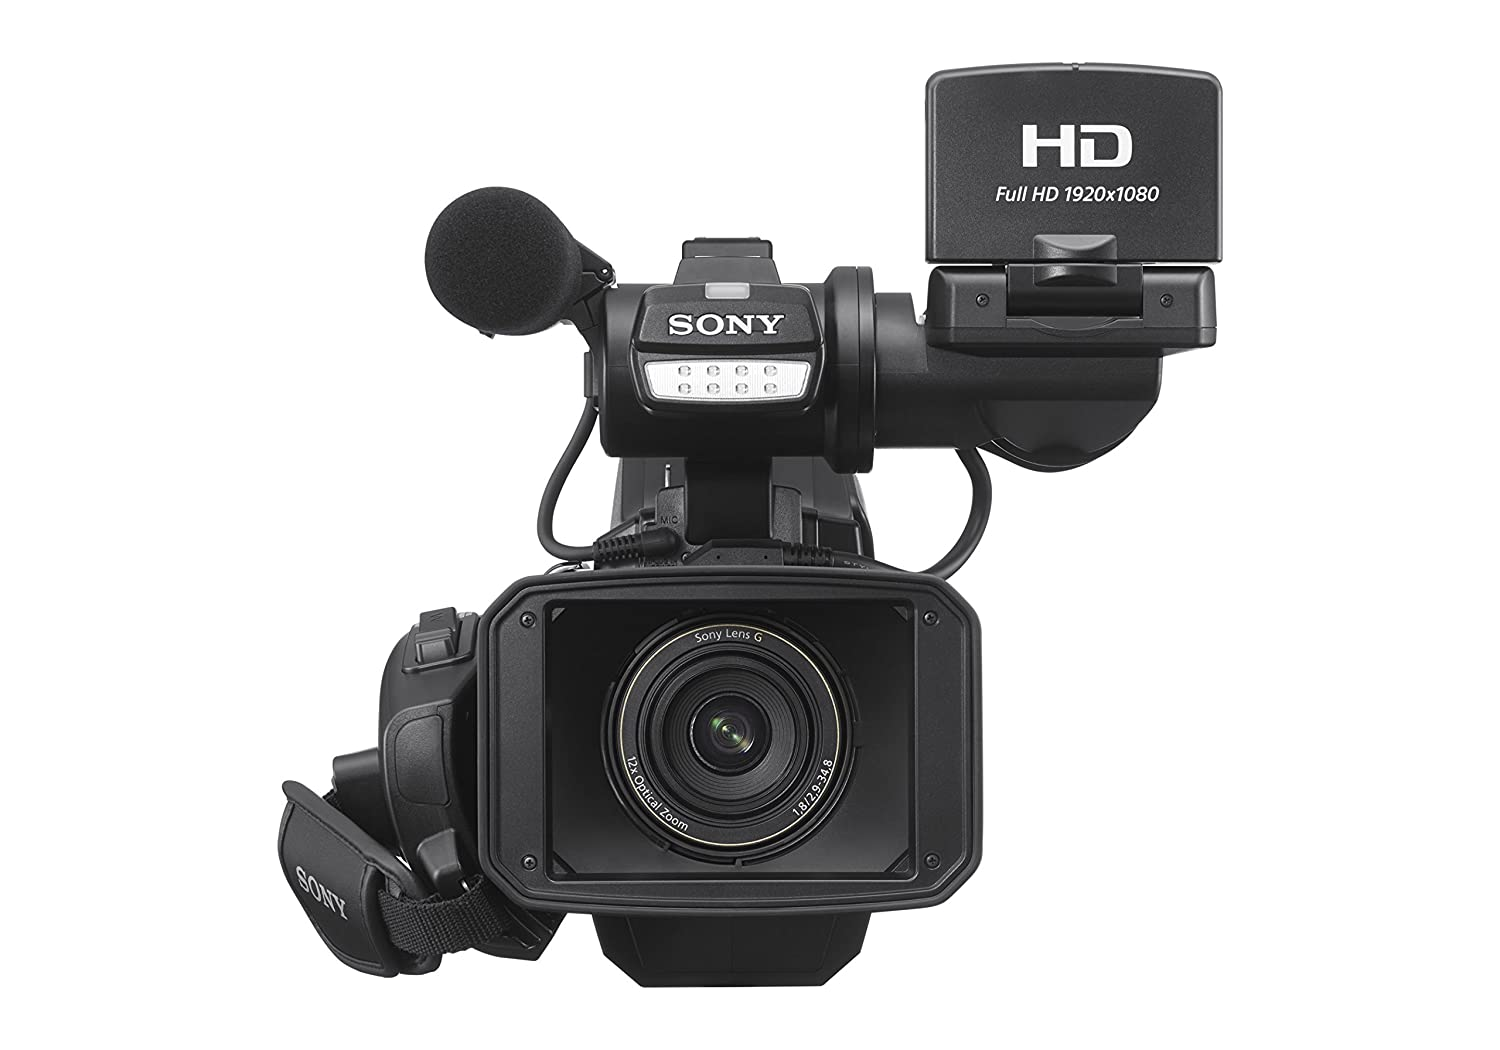 Buy Sony Hxr Mc2500 Camcorder Online At Low Price In India Tutup Body Lensa Camera Nikon Dslr Reviews Ratings